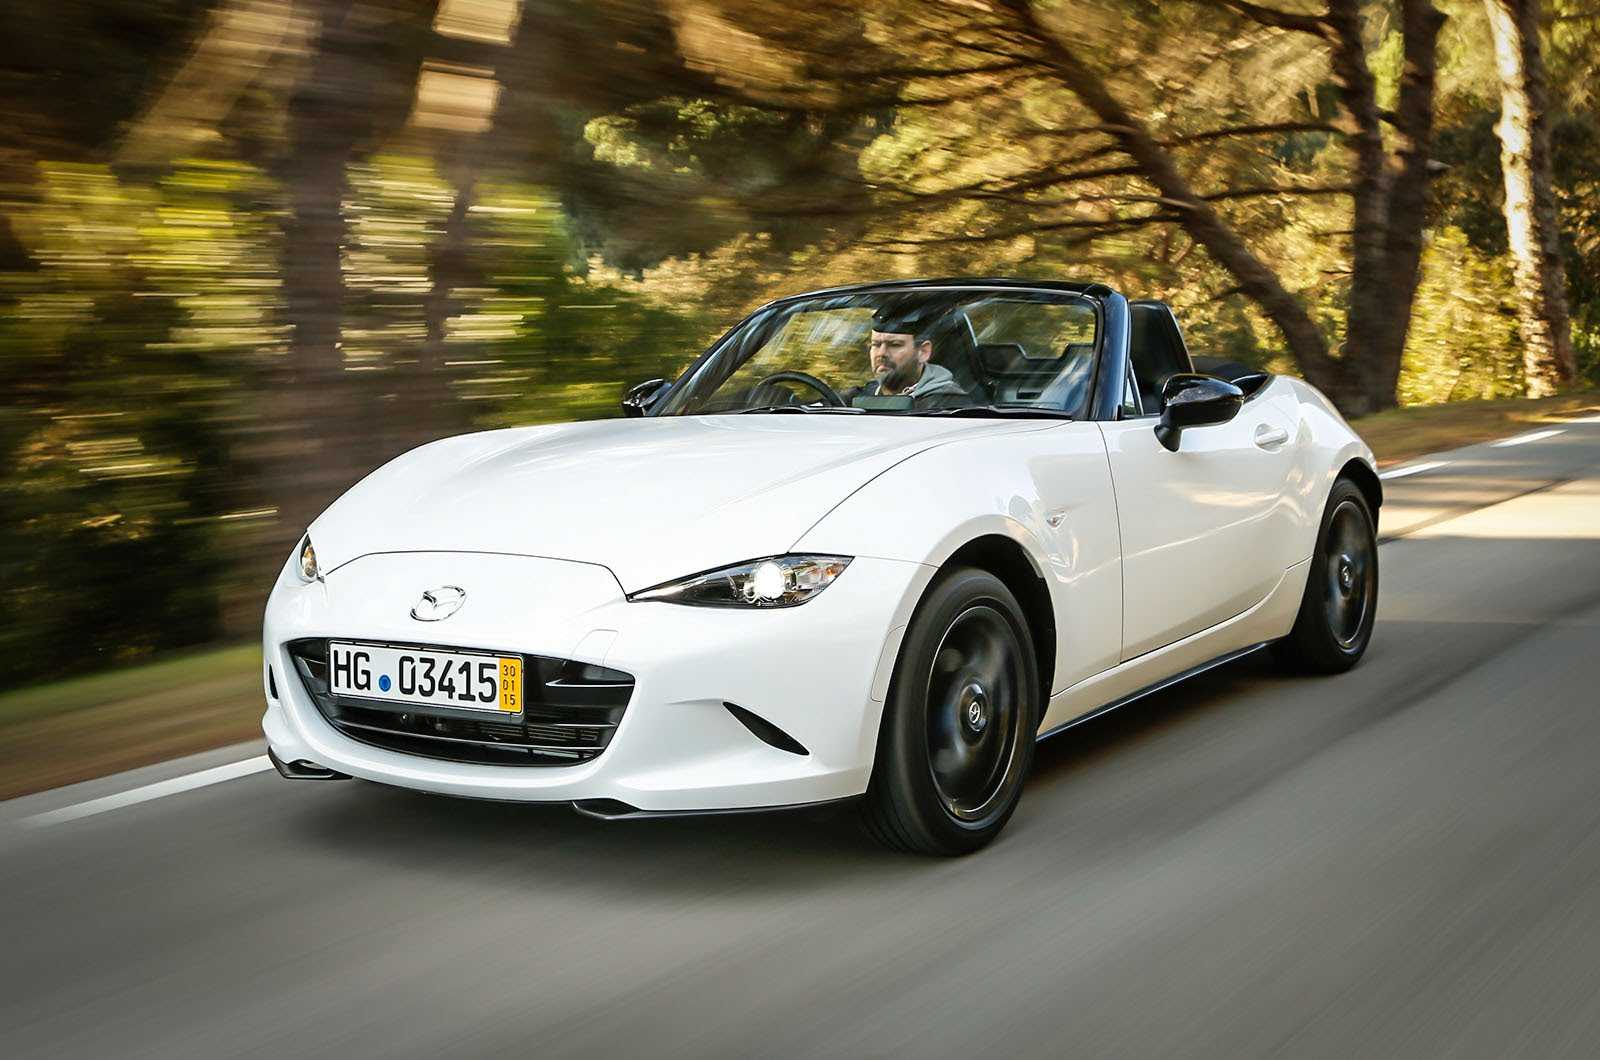 Toyota GT86 Can Finally Compete with the Mazda MX-5